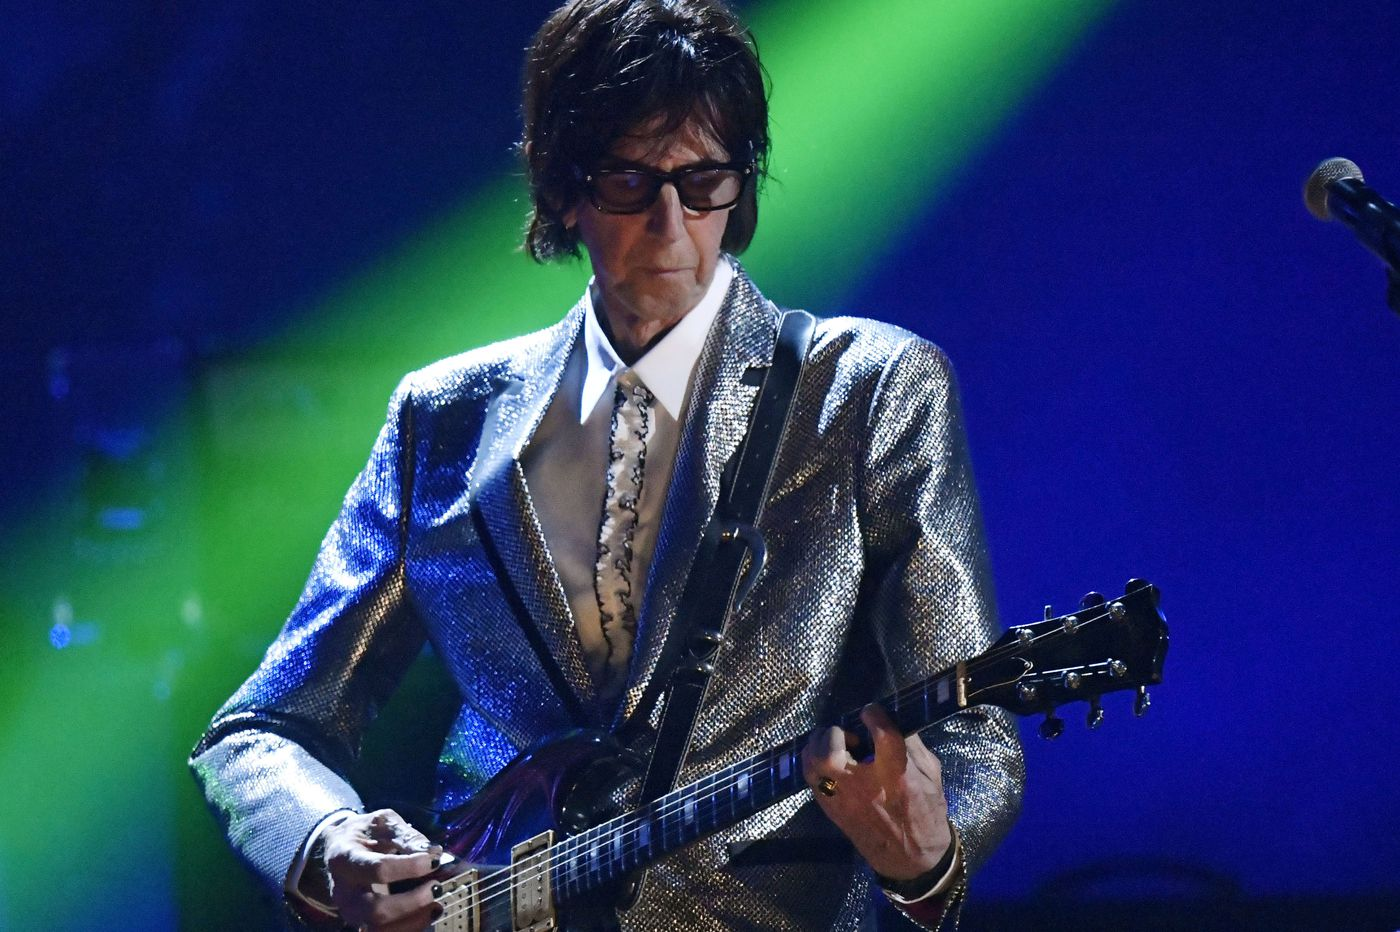 Rock musician Ric Ocasek, frontman of The Cars, dead at 75